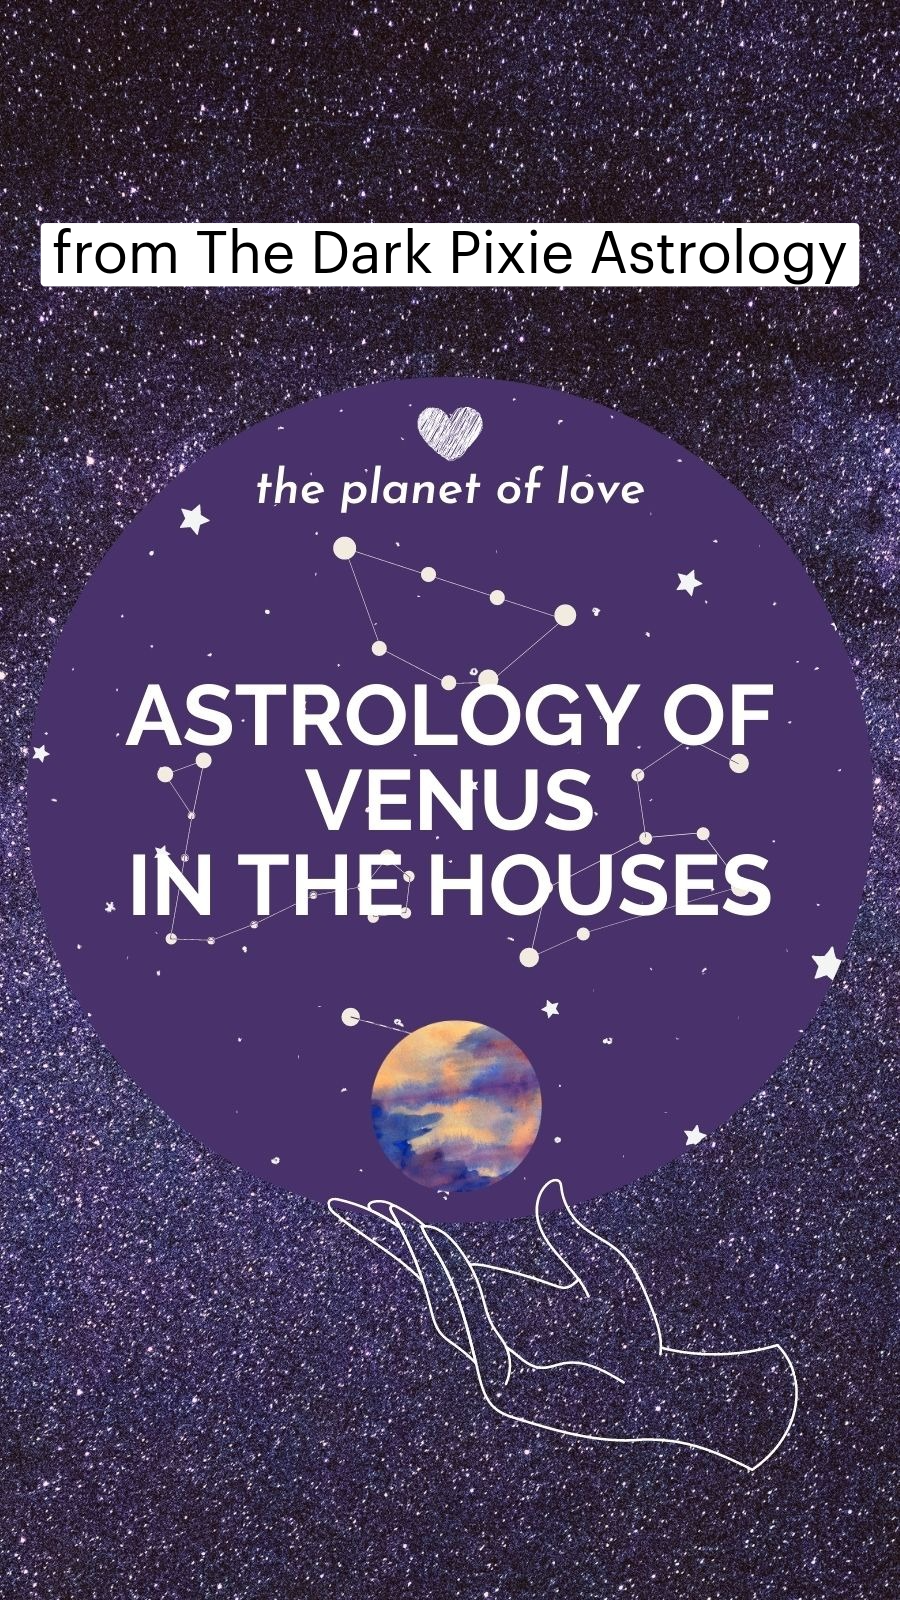 Astrology of Venus in the Houses